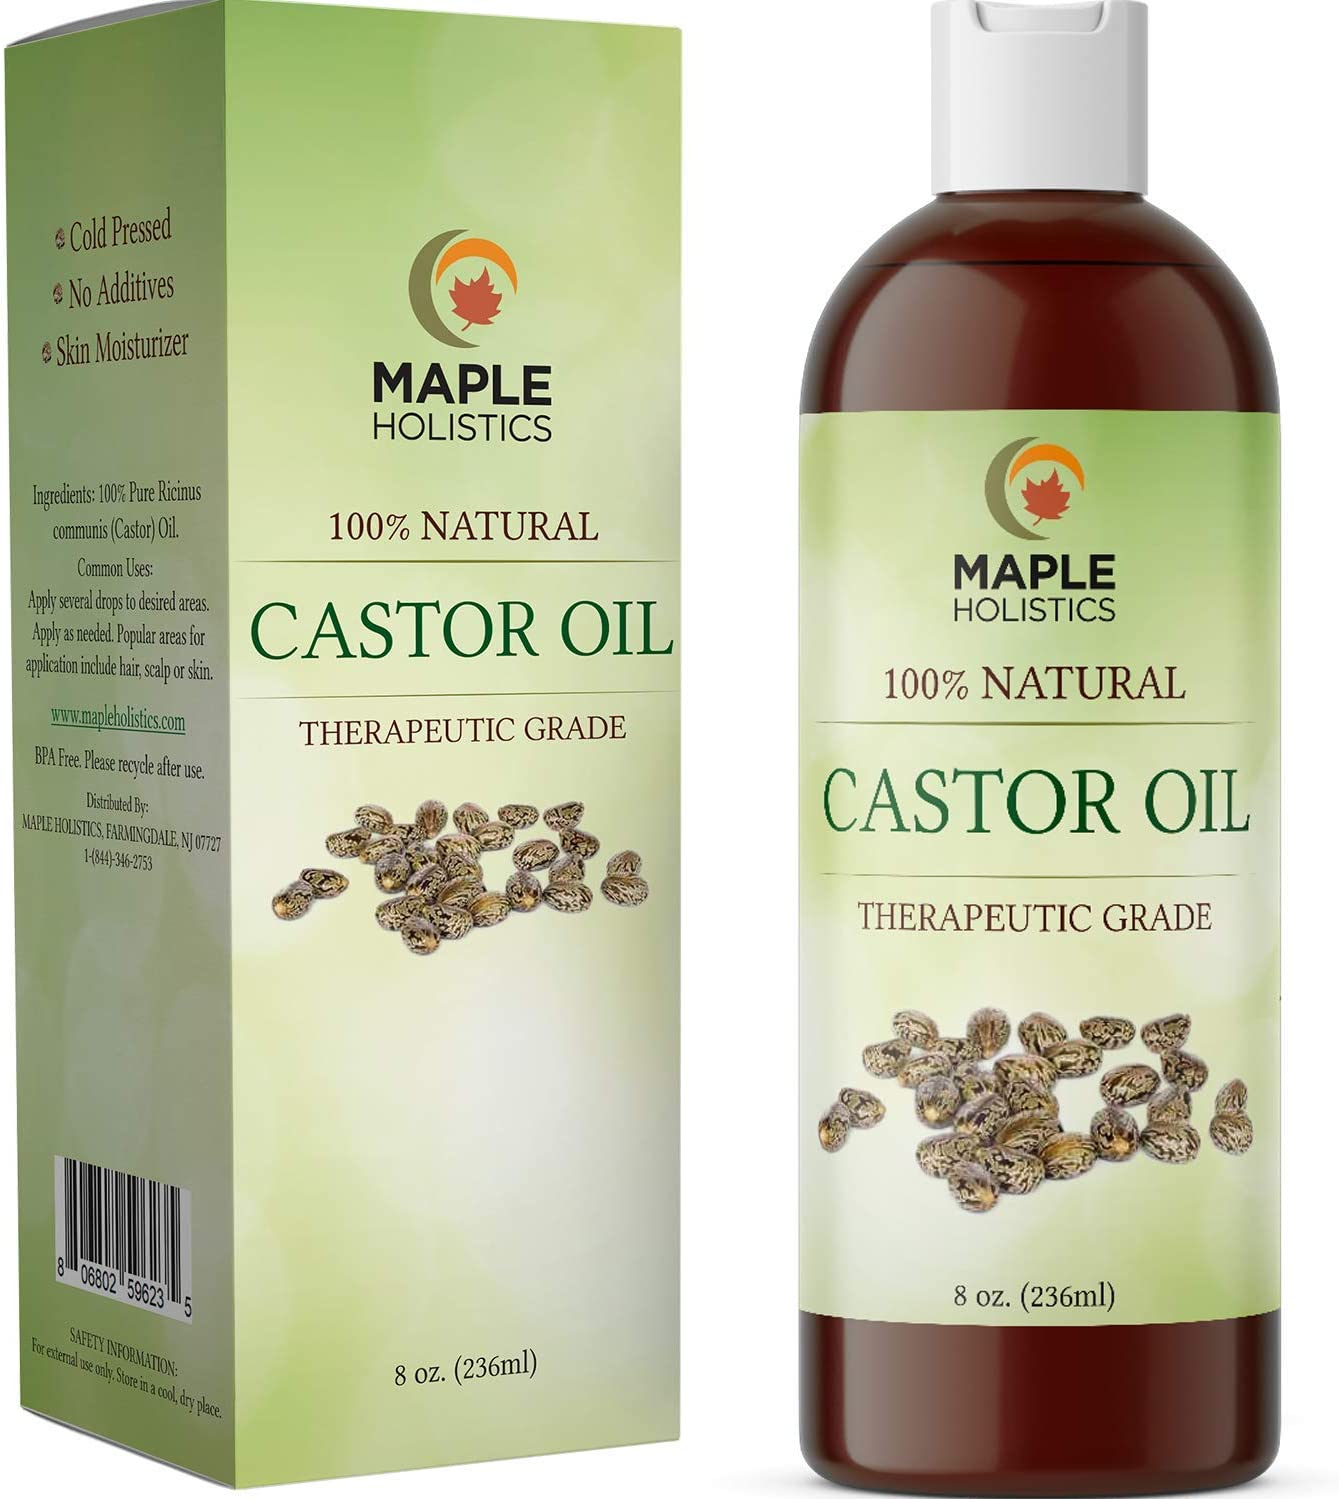 Amazon Com Jamaican Castor Oil For Hair Growth Cold Pressed Castor Oil For Eyelashes And Eyebrows Humectant Moisturizer And Candida Cleanse Jamaican Black Castor Oil For Hair Growth For Women And